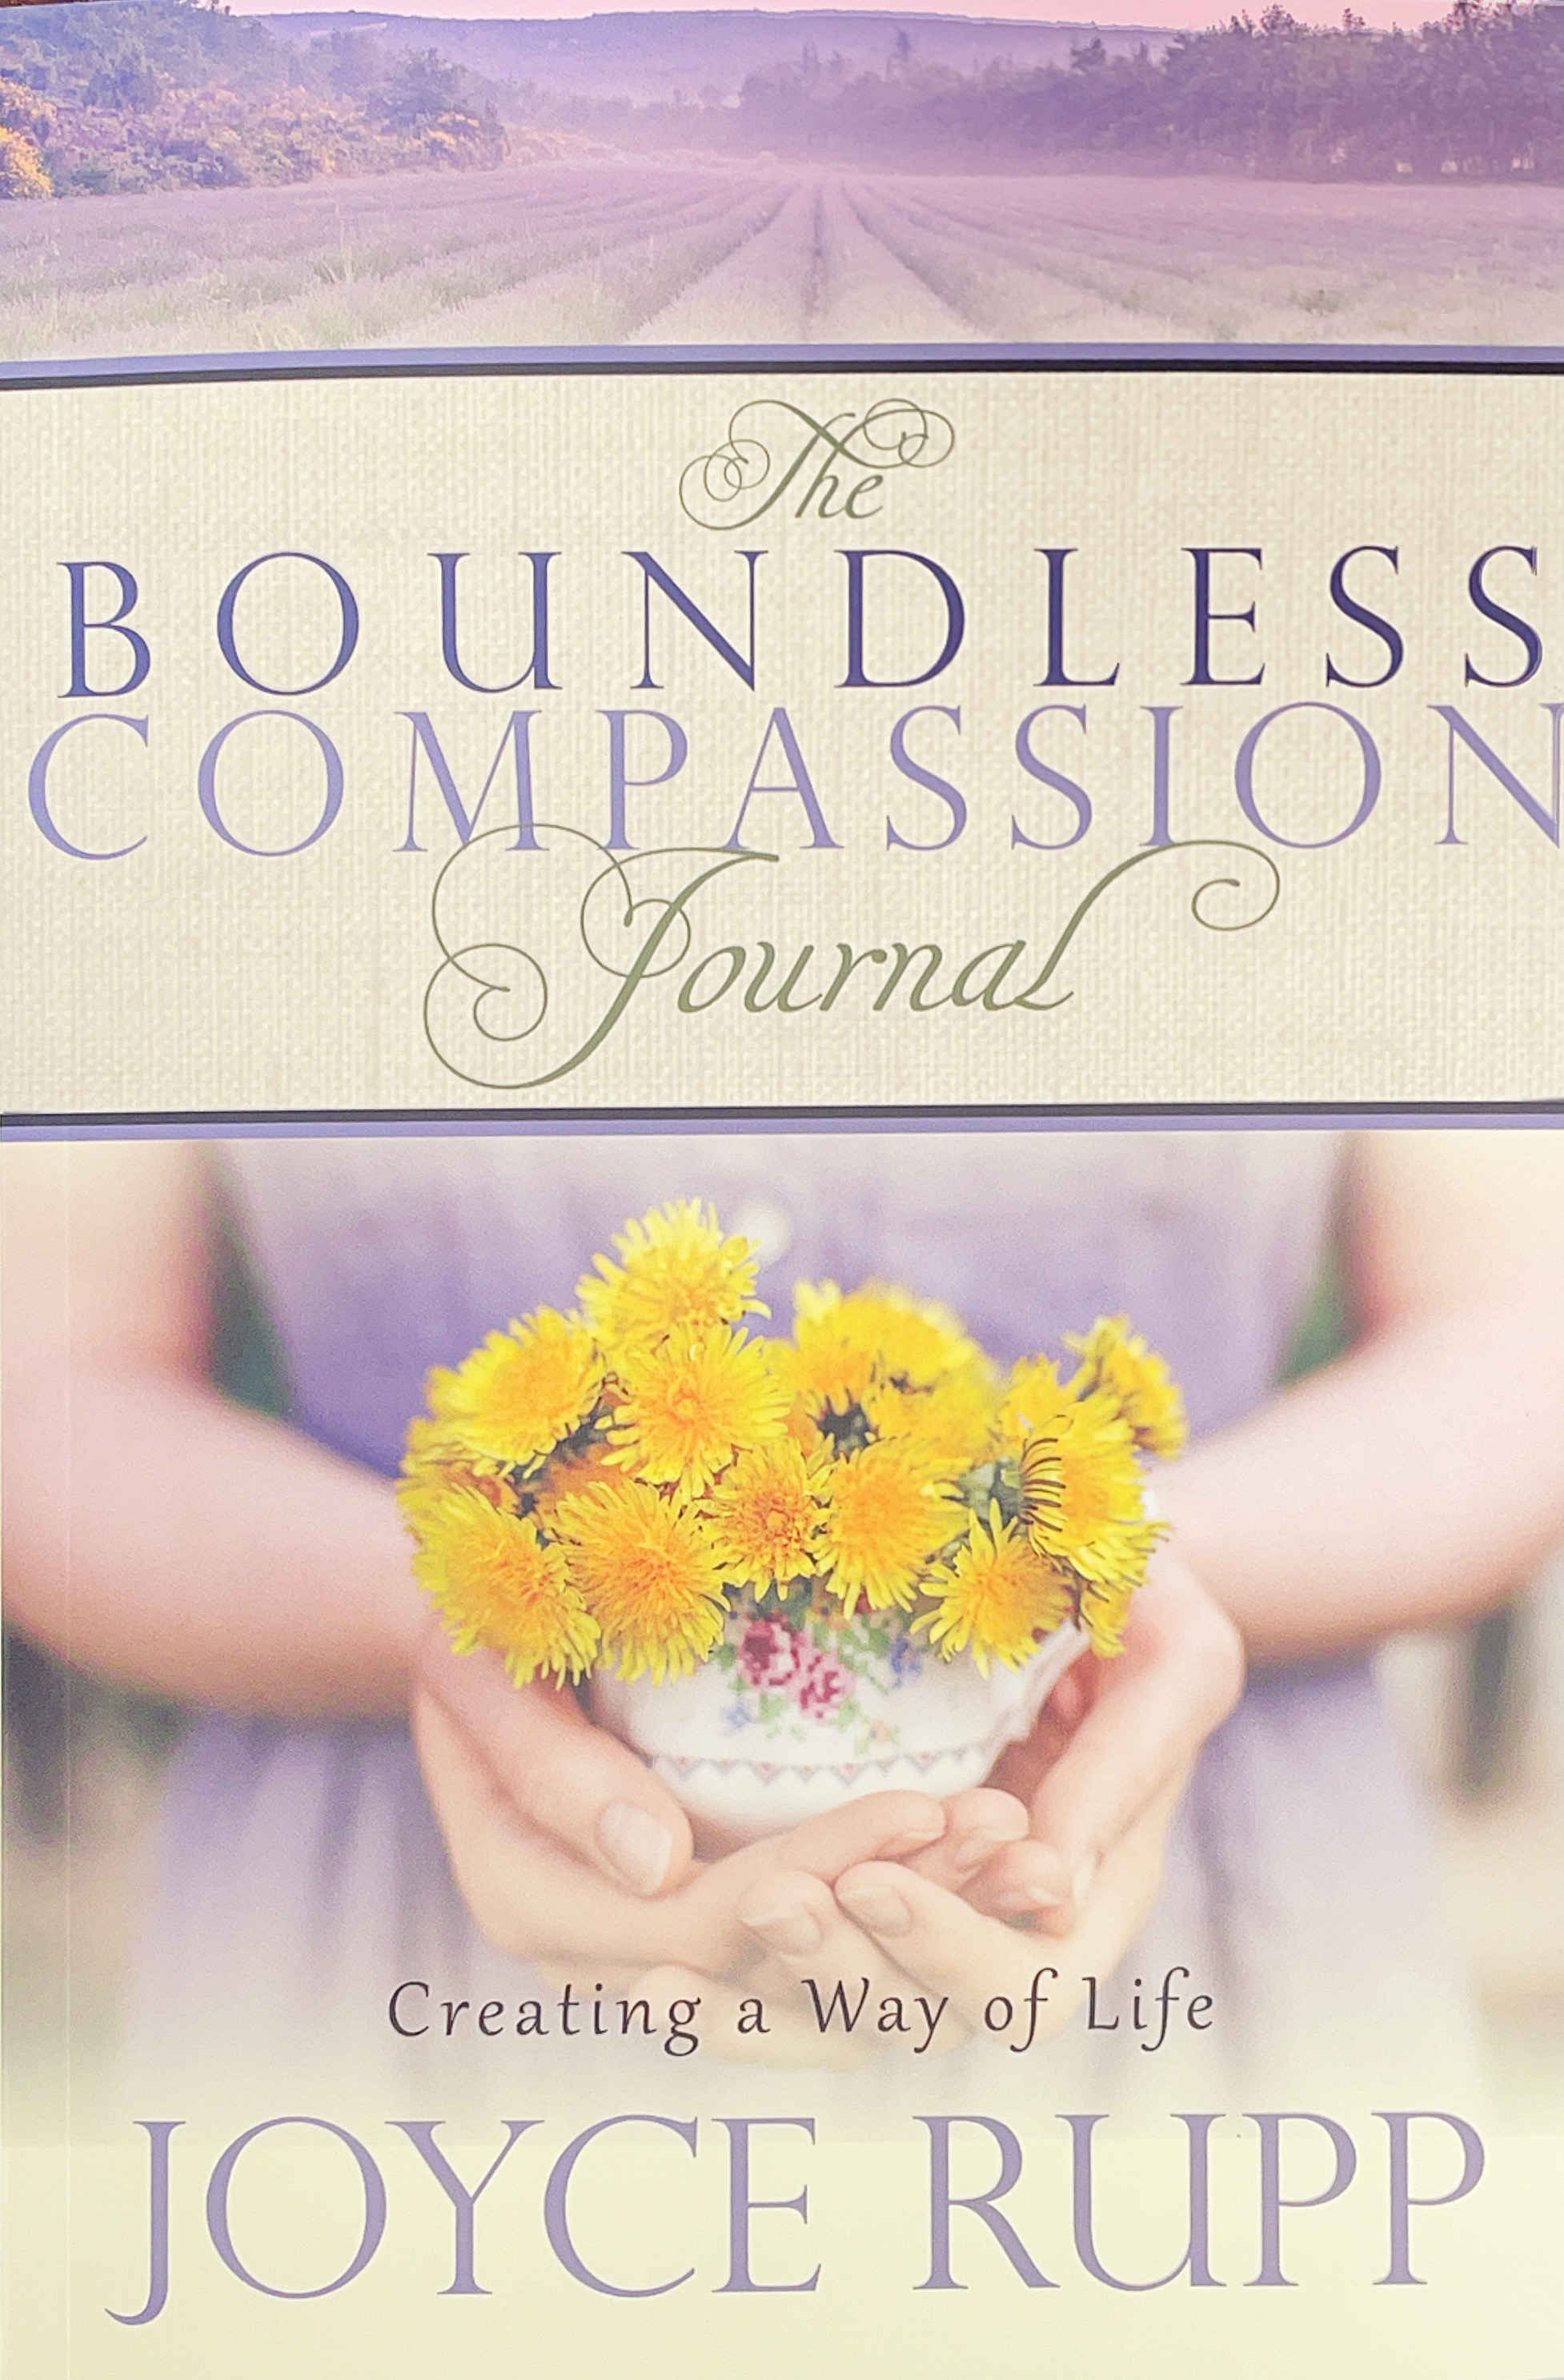 Boundless Compassion Journal (NEW)